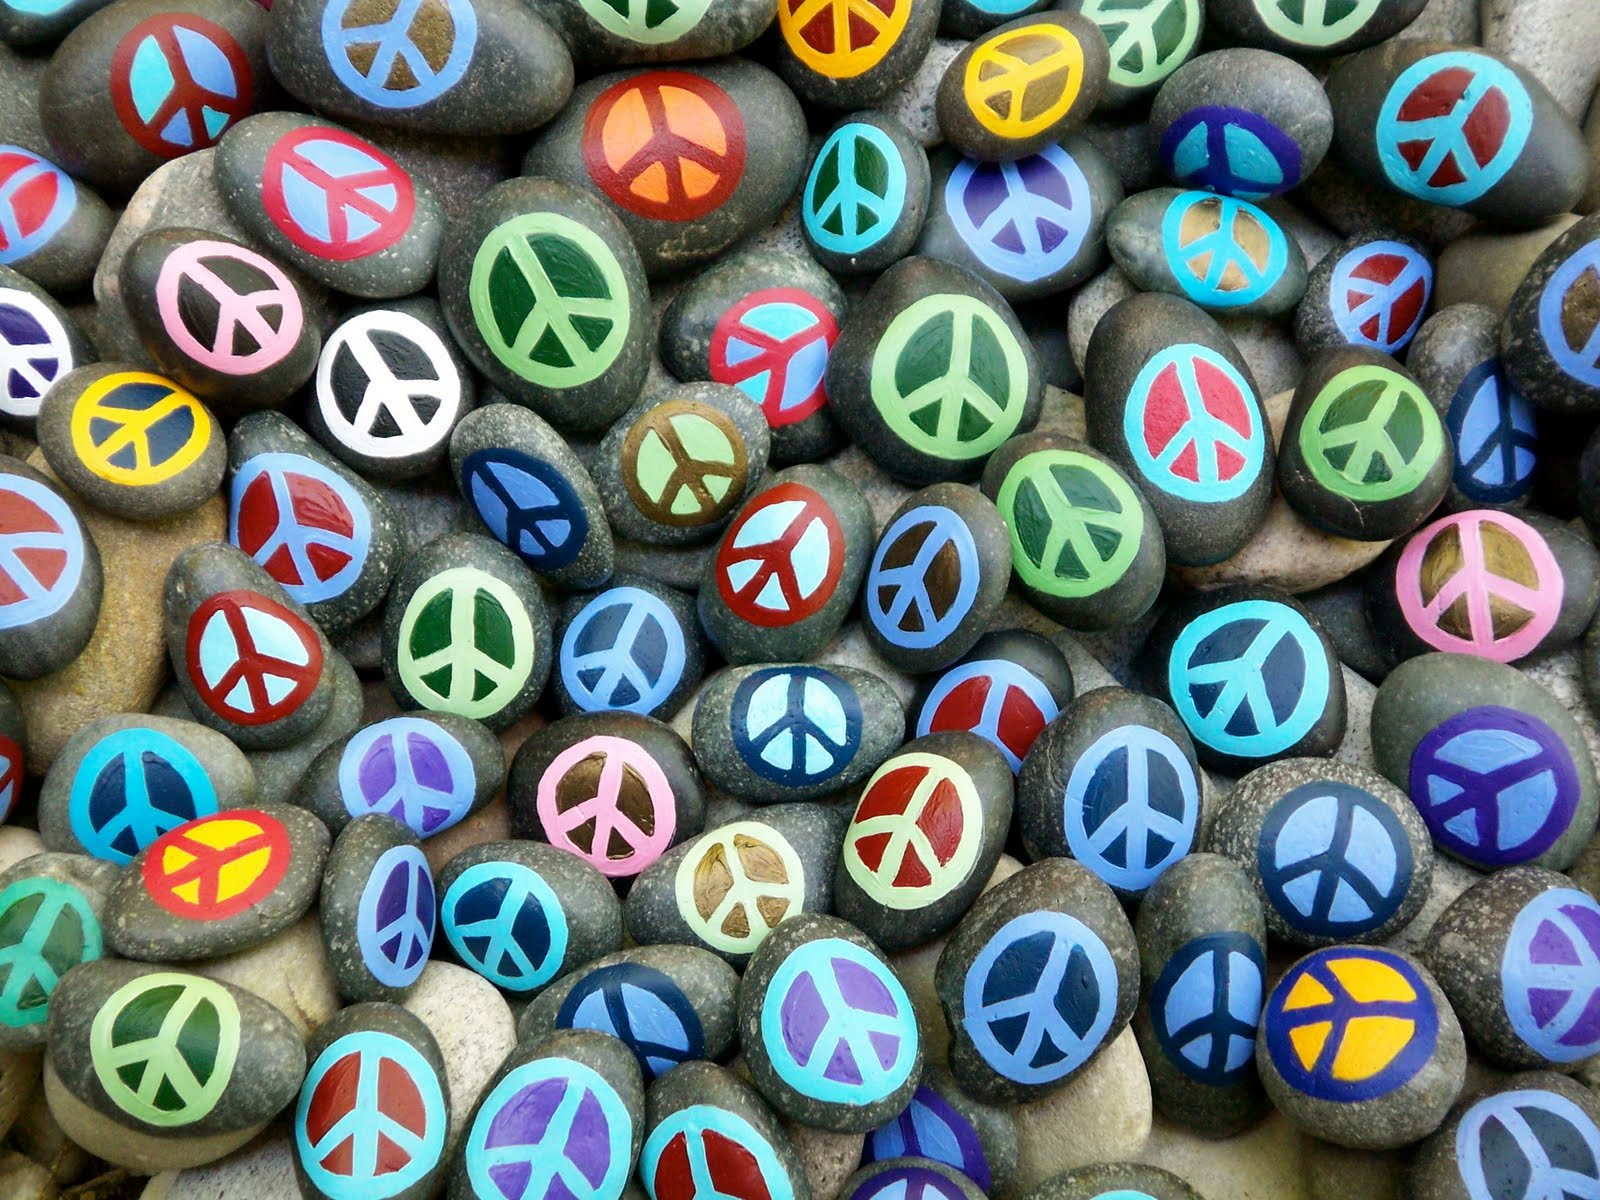 Peace signs on pinterest peace peace symbols and deviantart for 1 day paint